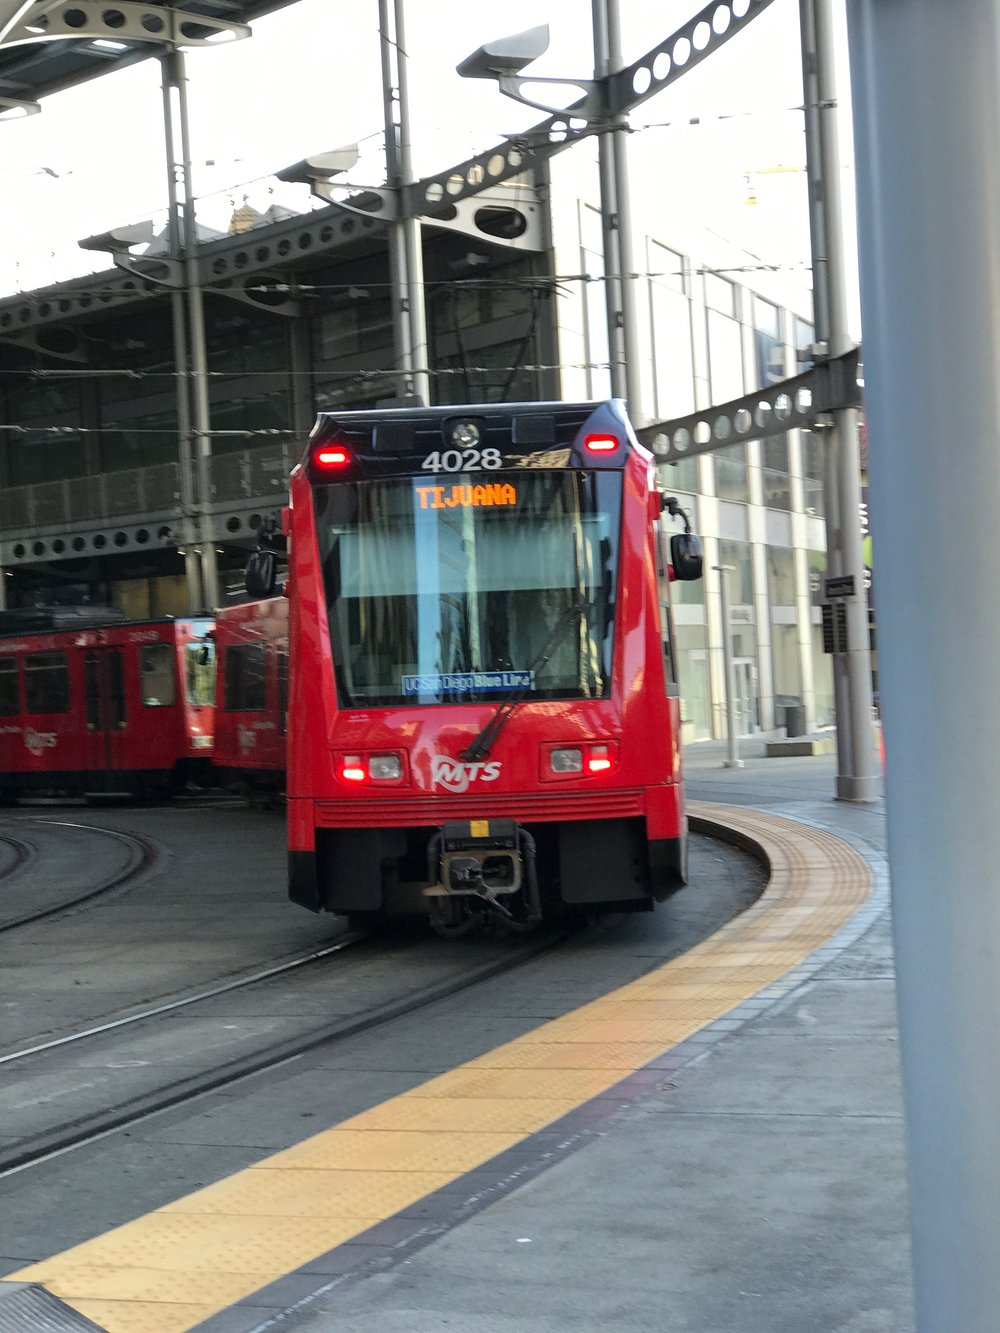 A streetcar bound for Tijuana pulls into a station in San Diego earlier this month. Photo: Don Day/BoiseDev.com